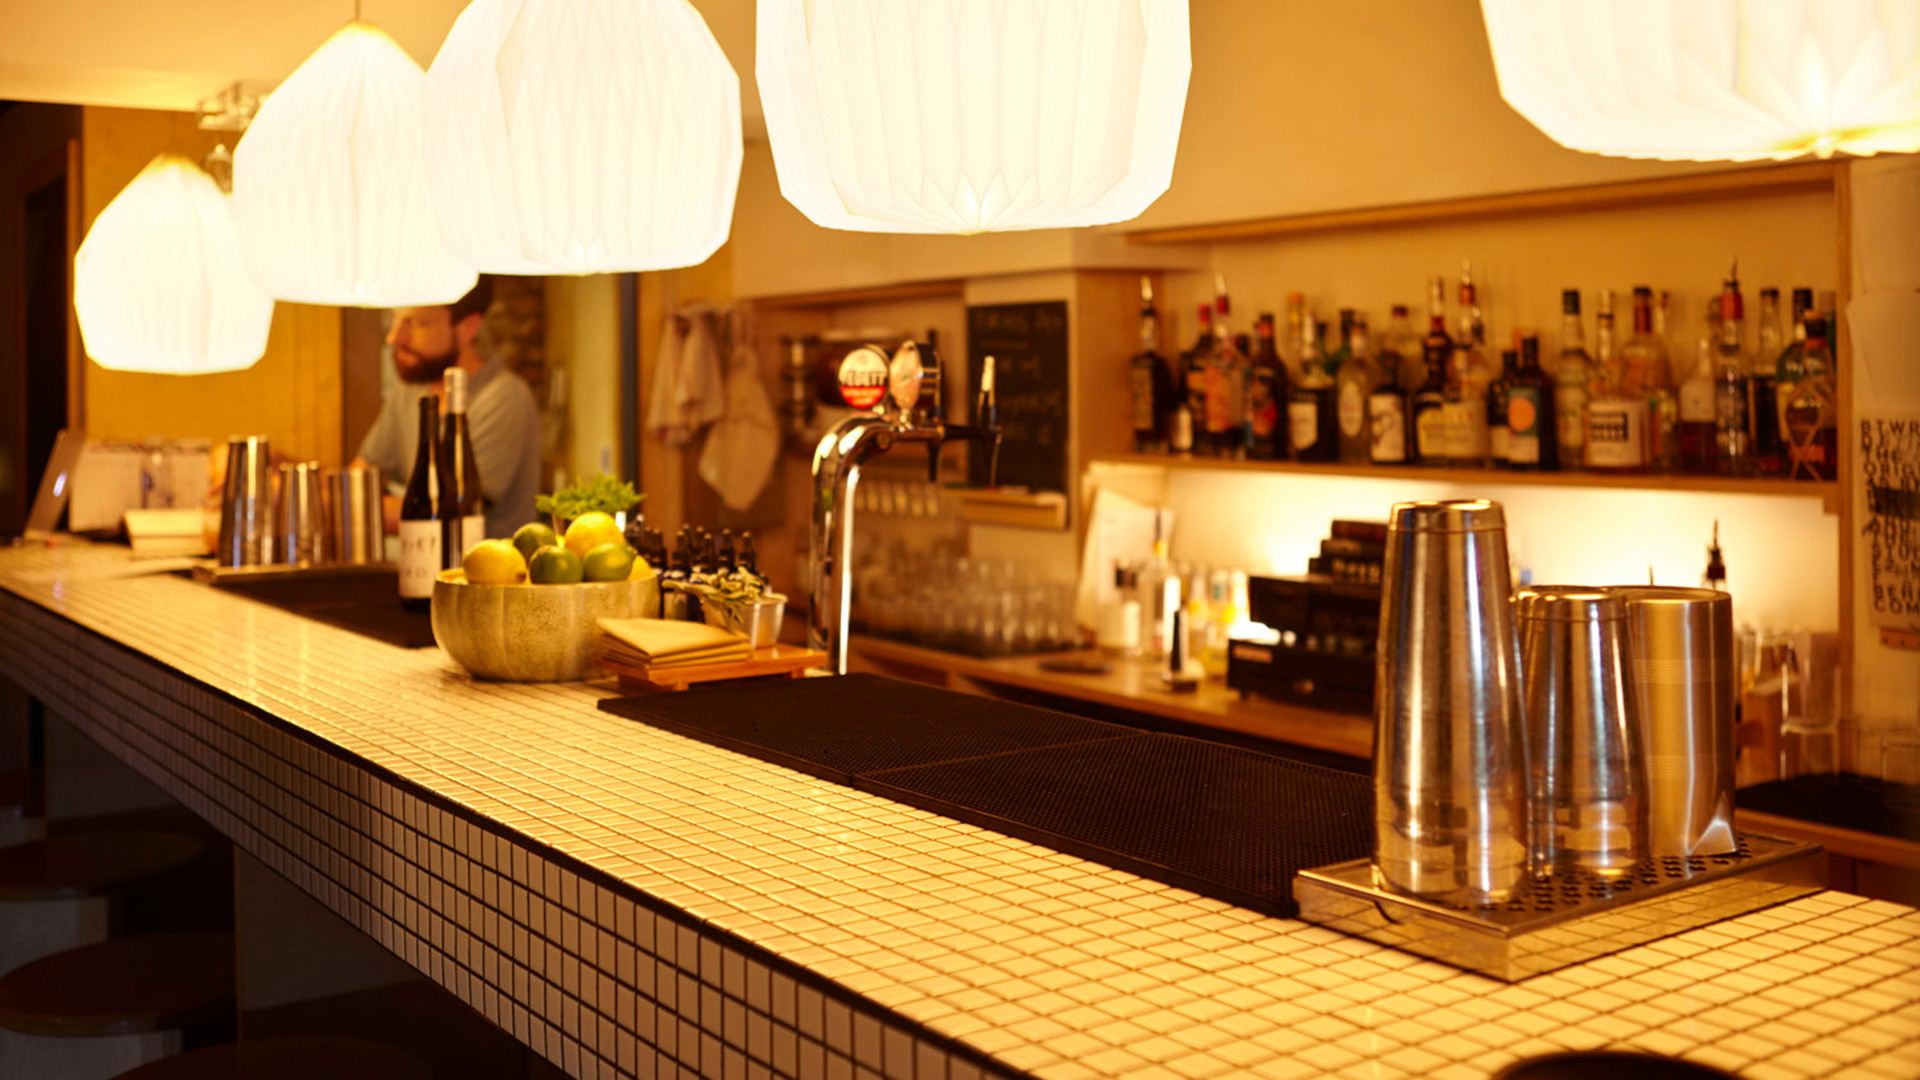 London's best basement bars: Behind This Wall